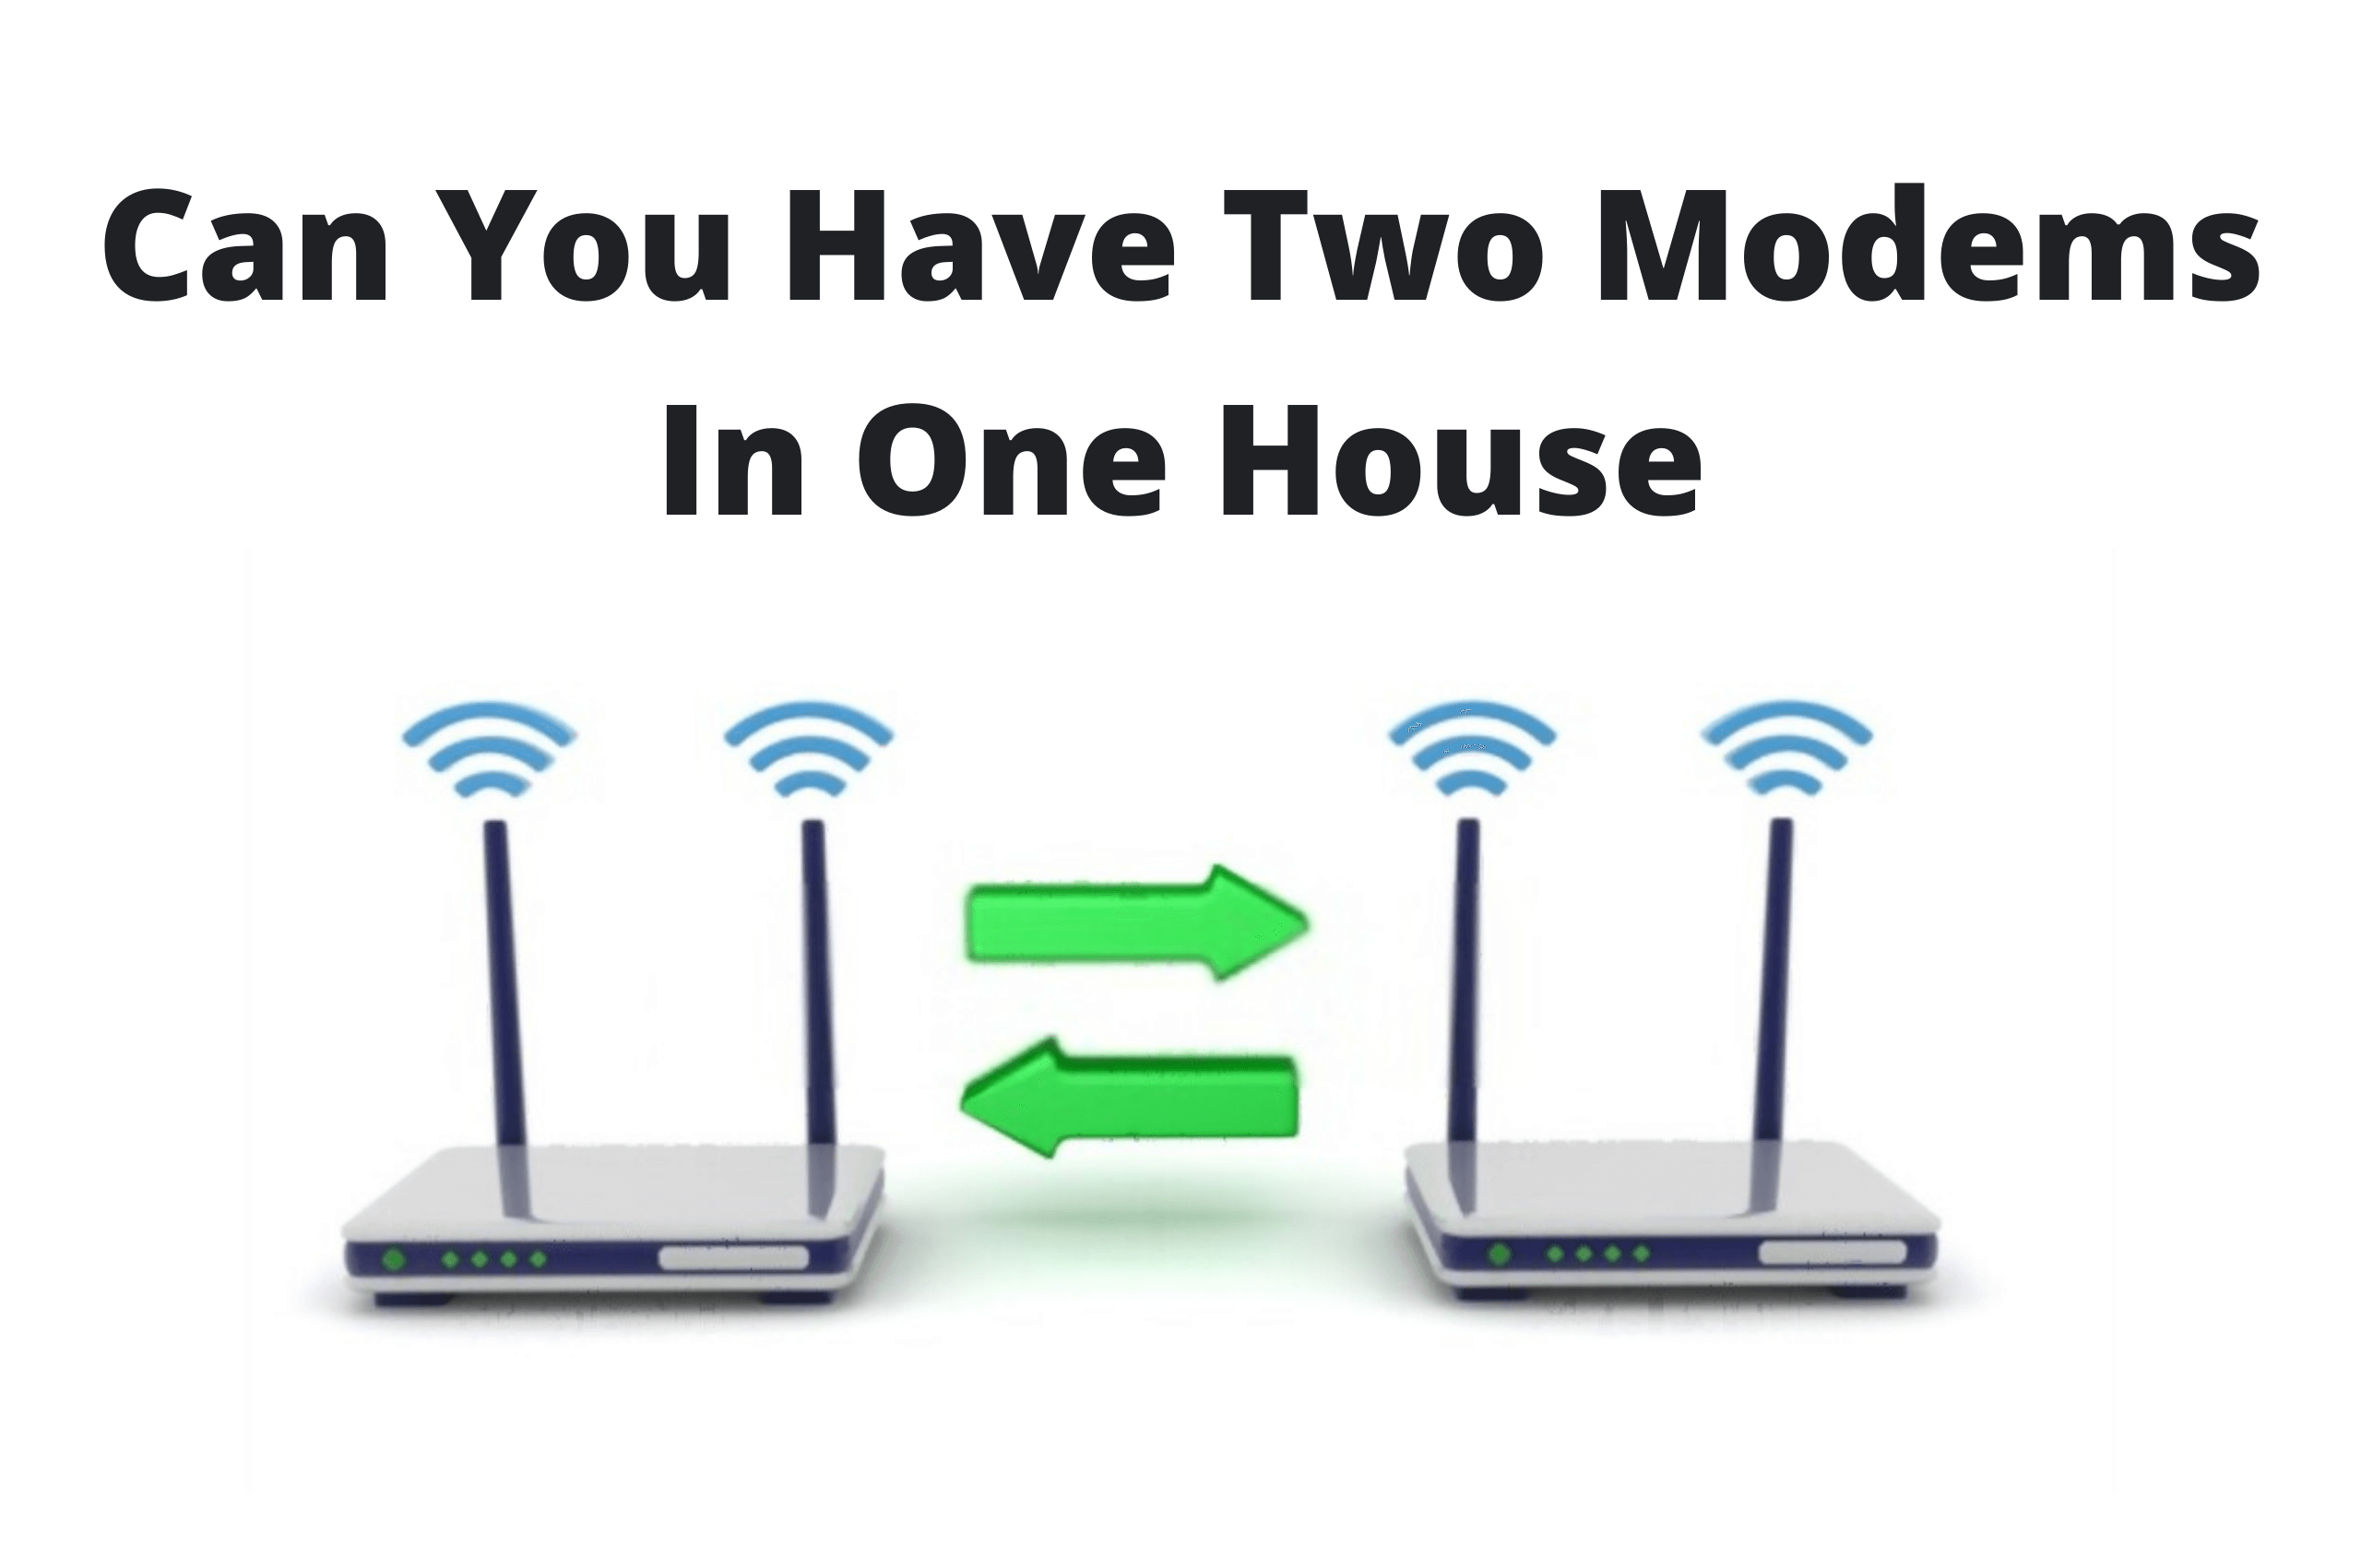 two modems in one house